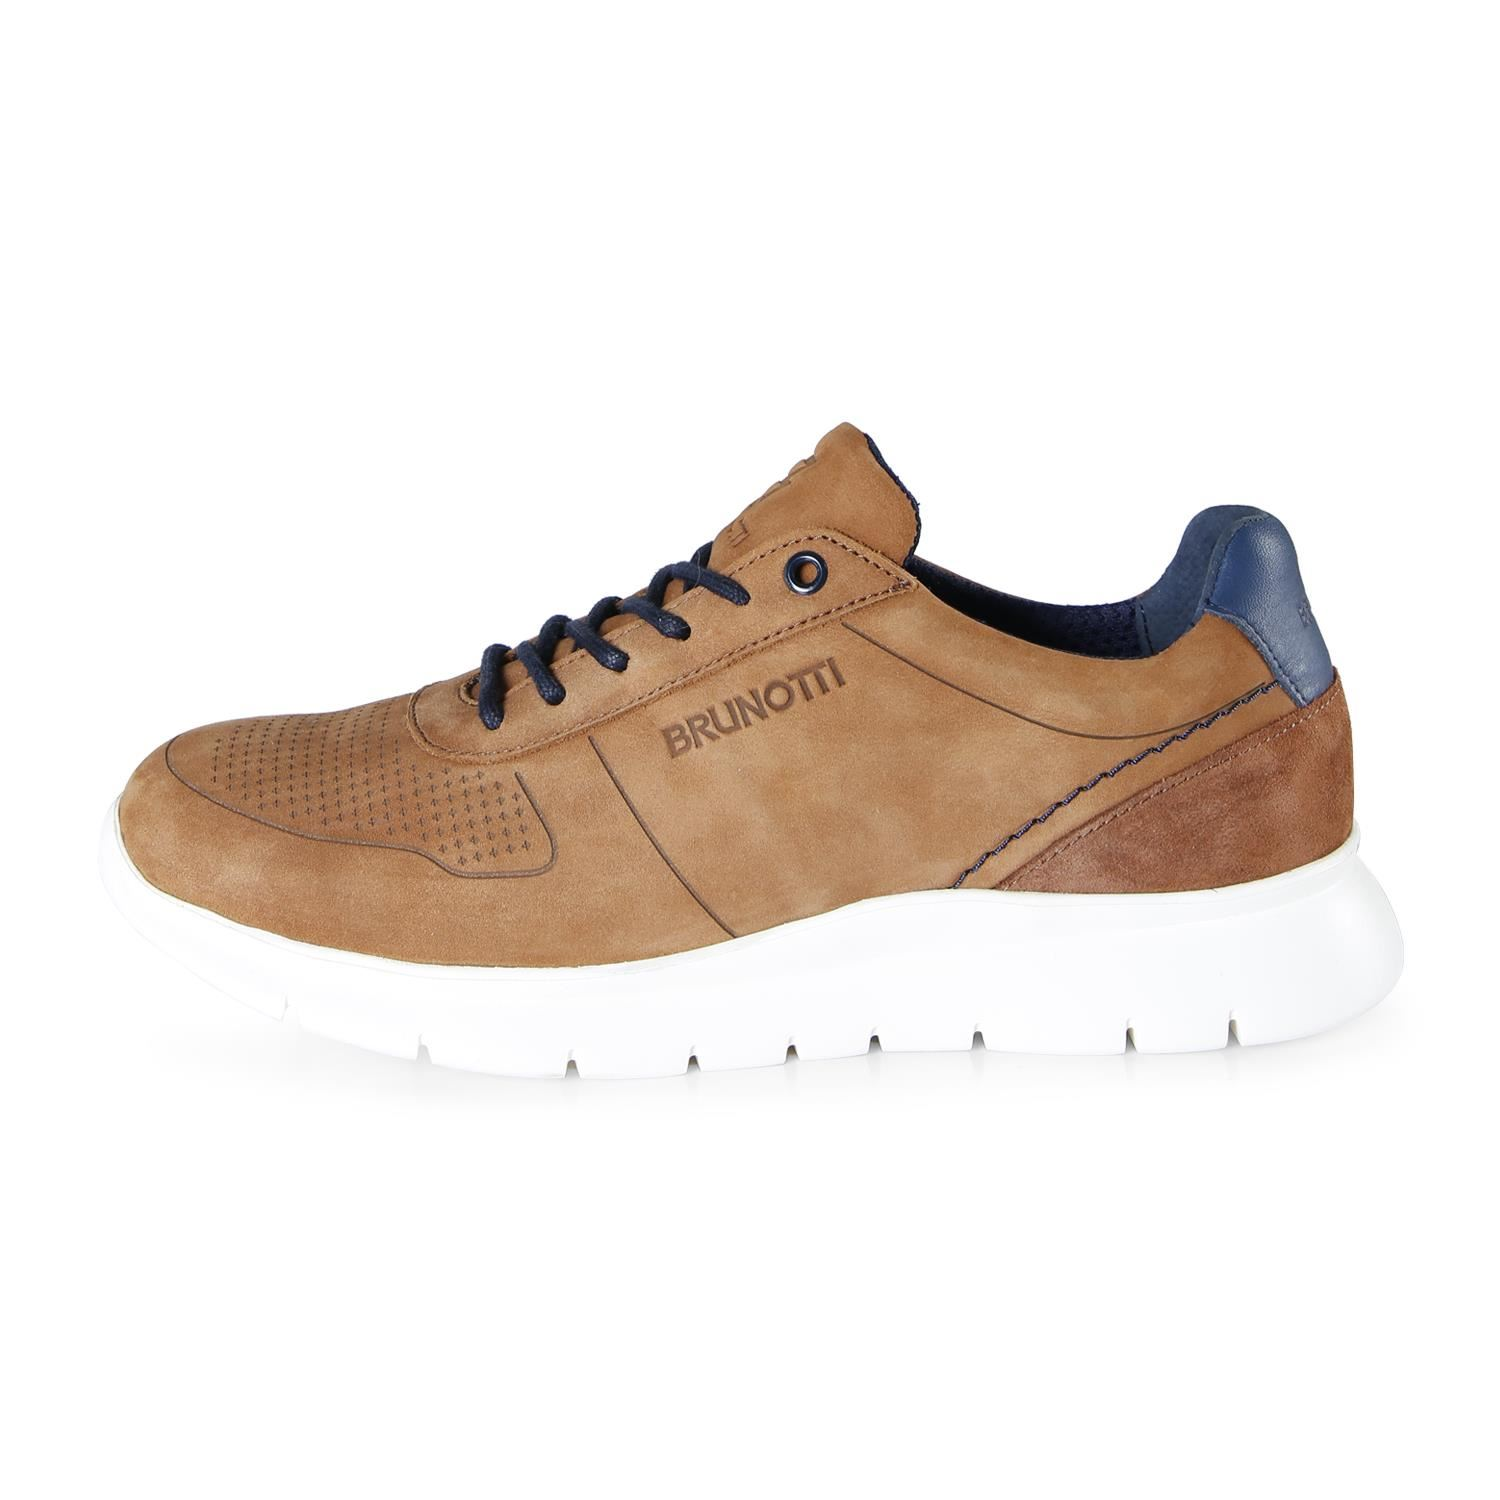 Brunotti Sayulita  (brown) - men shoes - Brunotti online shop